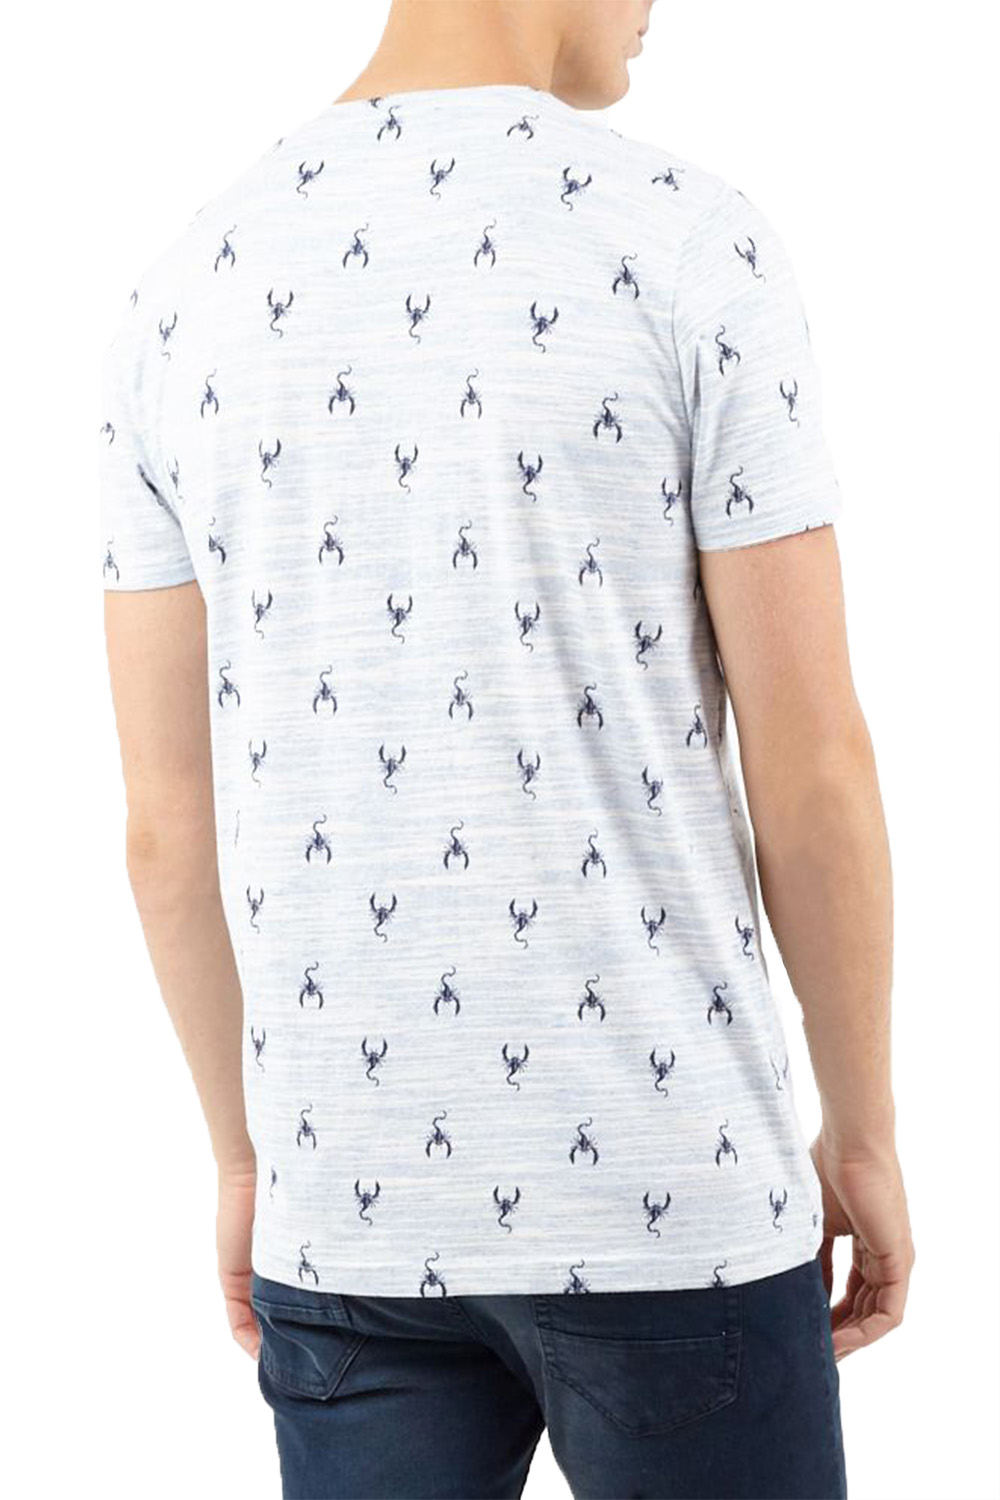 Brave-Soul-Mens-Designer-Scorpion-Soft-Casual-Summer-Premium-Patterned-T-Shirt thumbnail 5